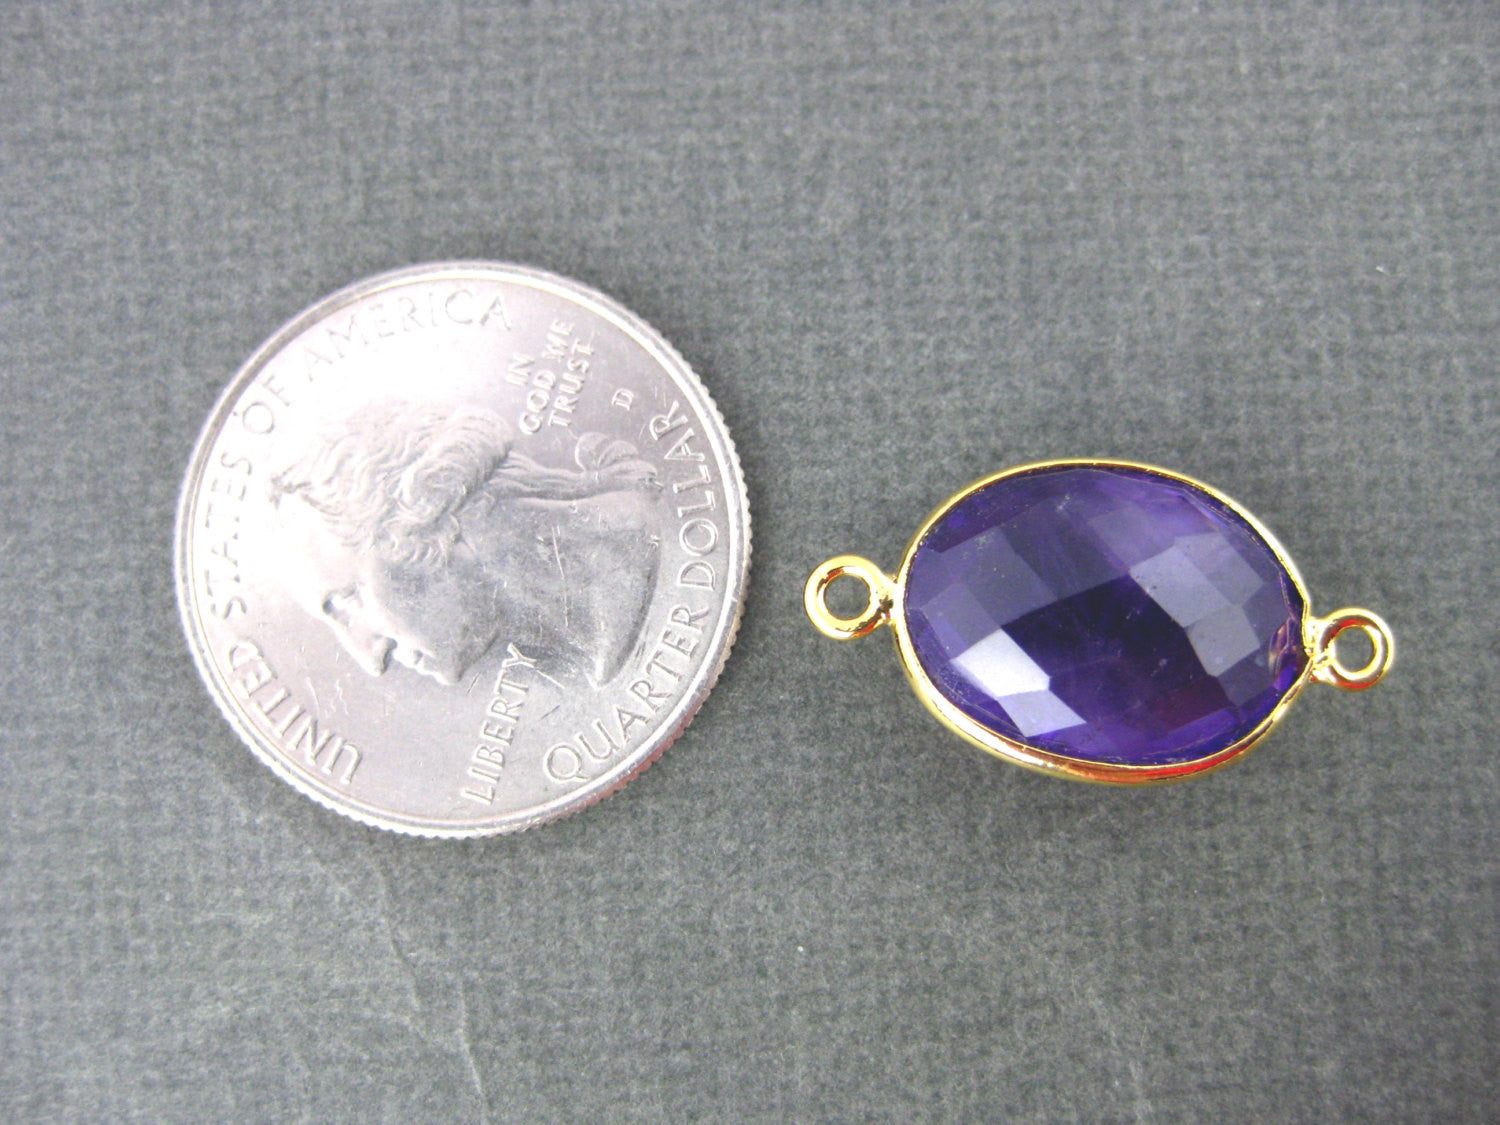 Amethyst Station Oval Connector - 12mm x 16mm Silver  layered Bezel Link - Double Bail Charm Pendant